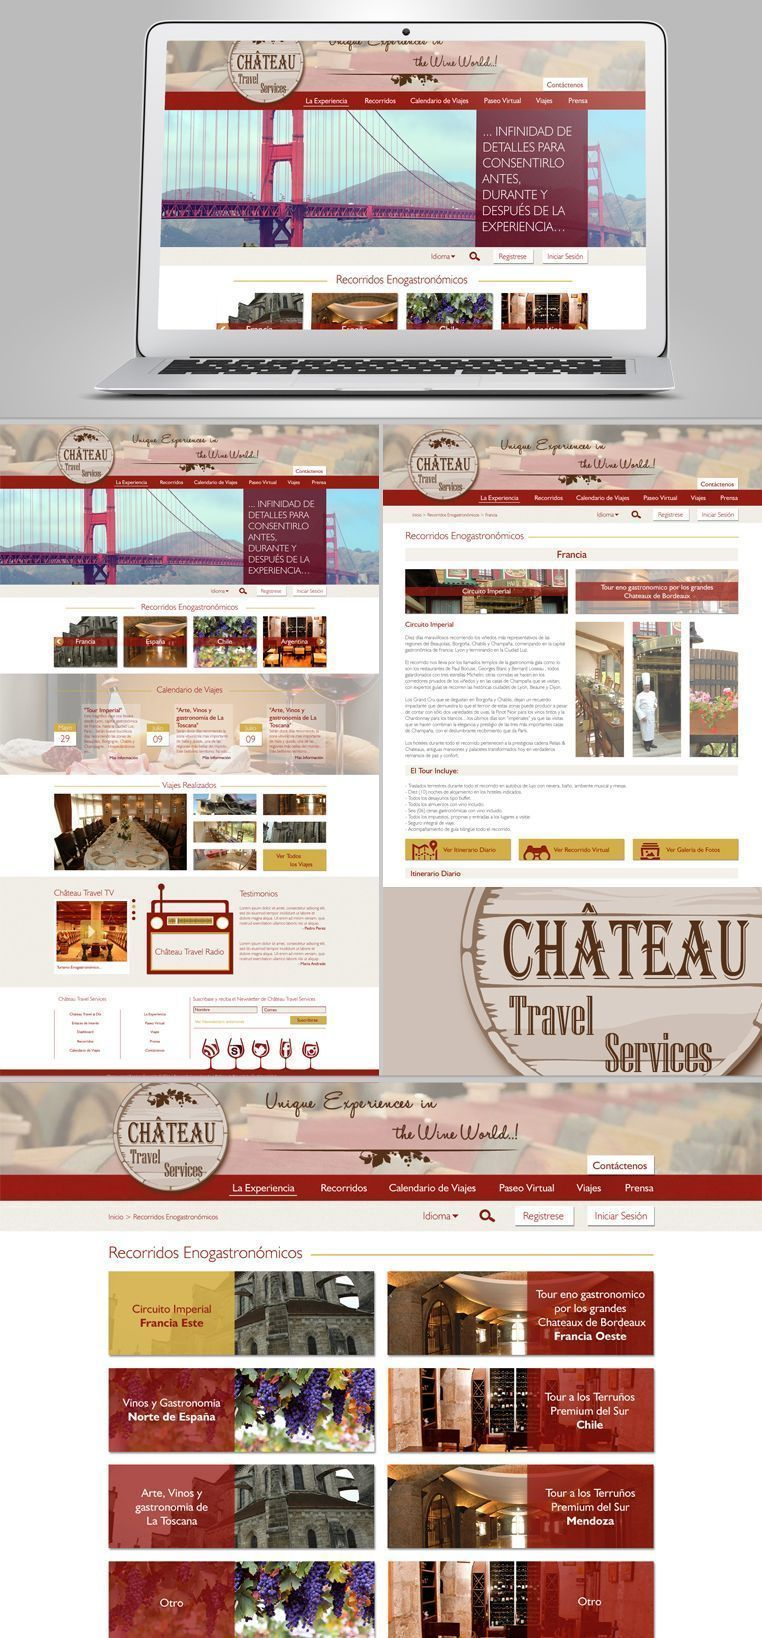 Chateau Travel Services